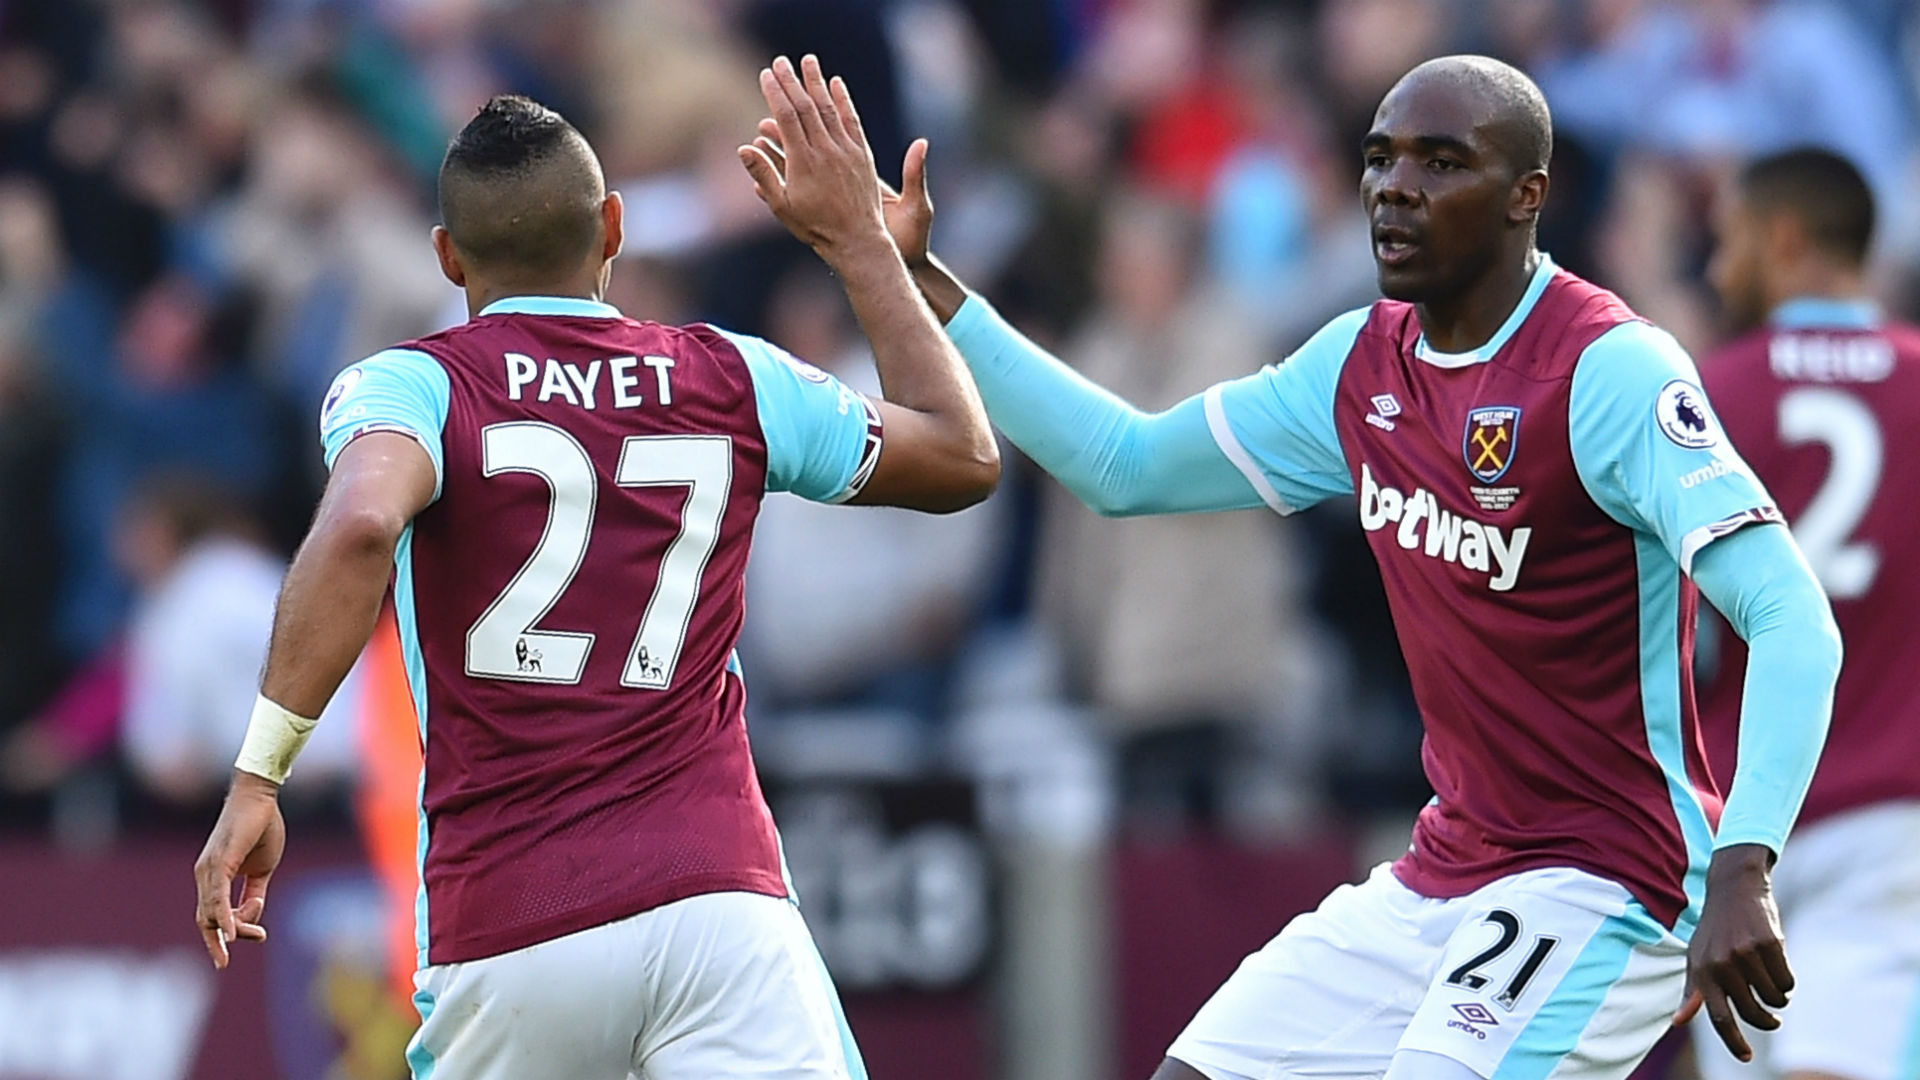 West Ham boss Slaven Bilic likens Dimitri Payet to Lionel Messi